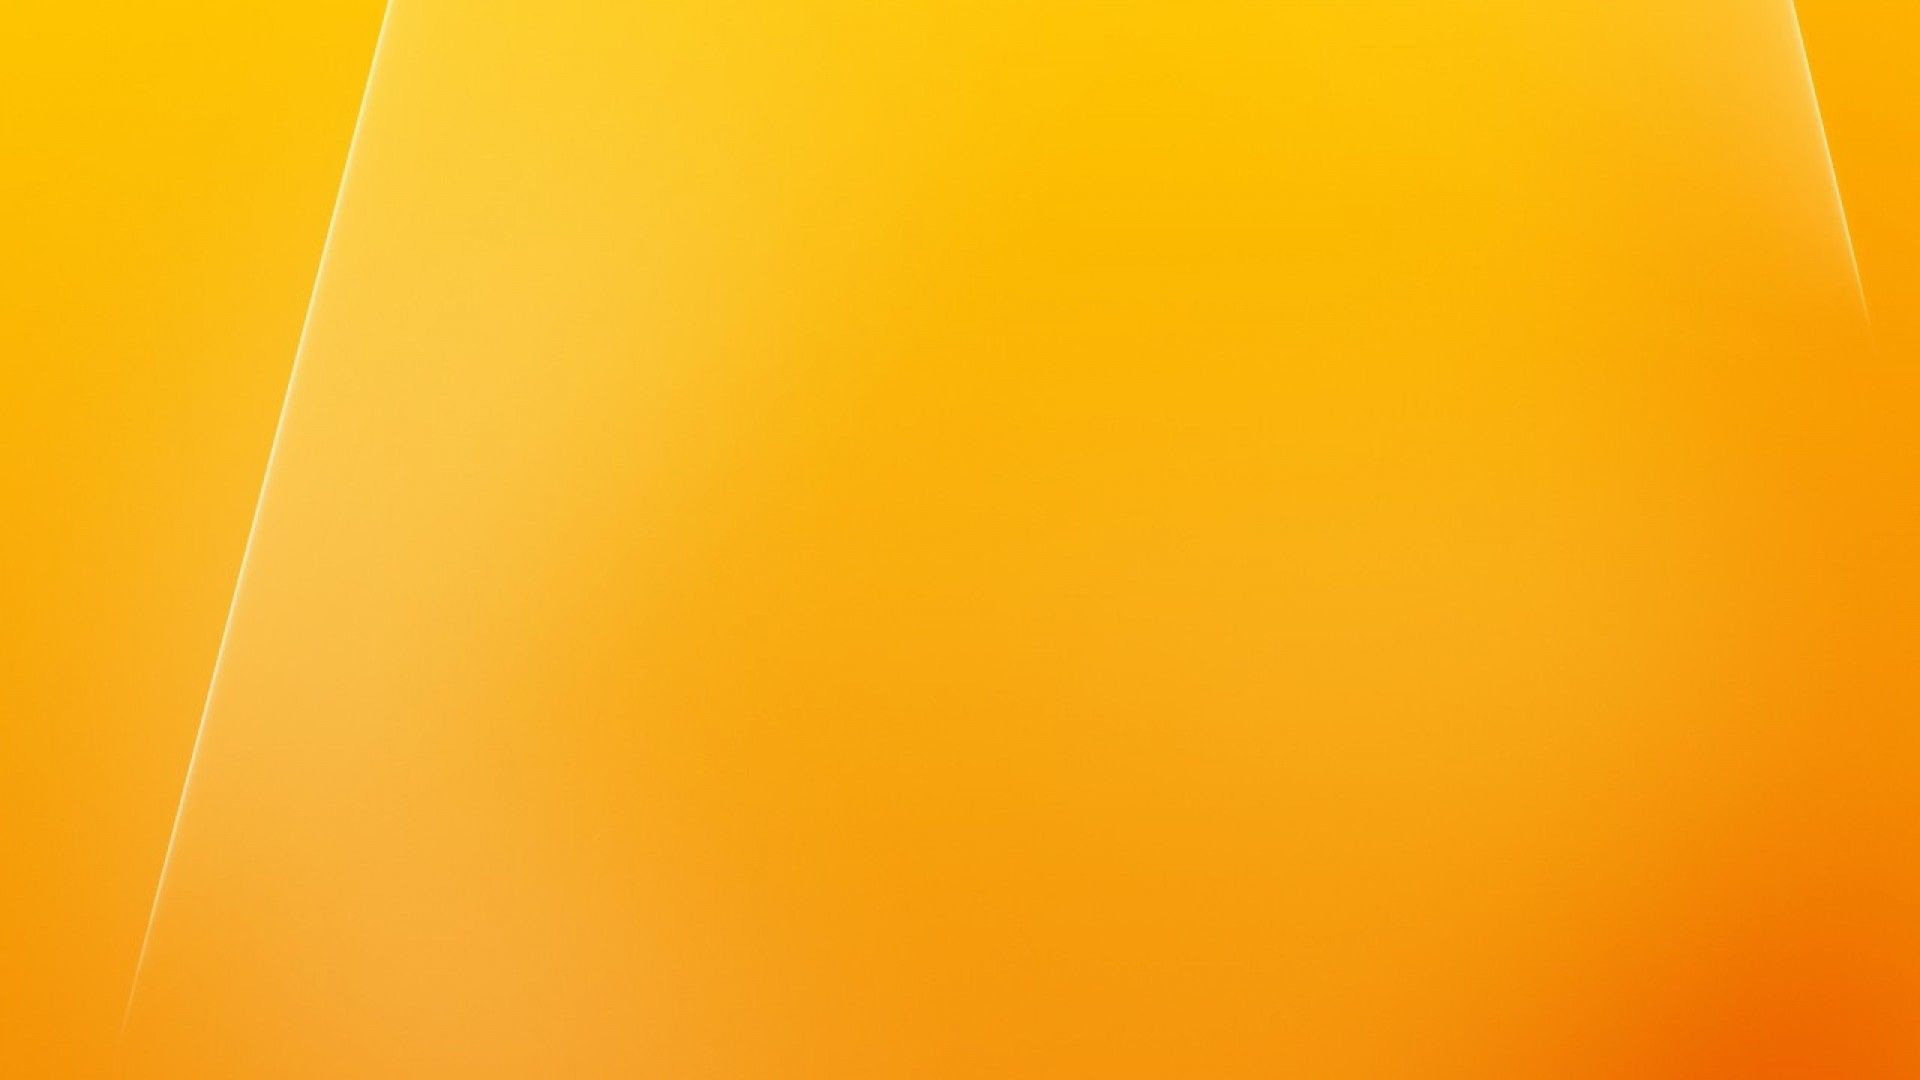 Res: 1920x1080, Yellow Abstract Wallpapers HD Download 1920×1080 Yellow Abstract Wallpapers  (46 Wallpapers) | Adorable Wallpapers